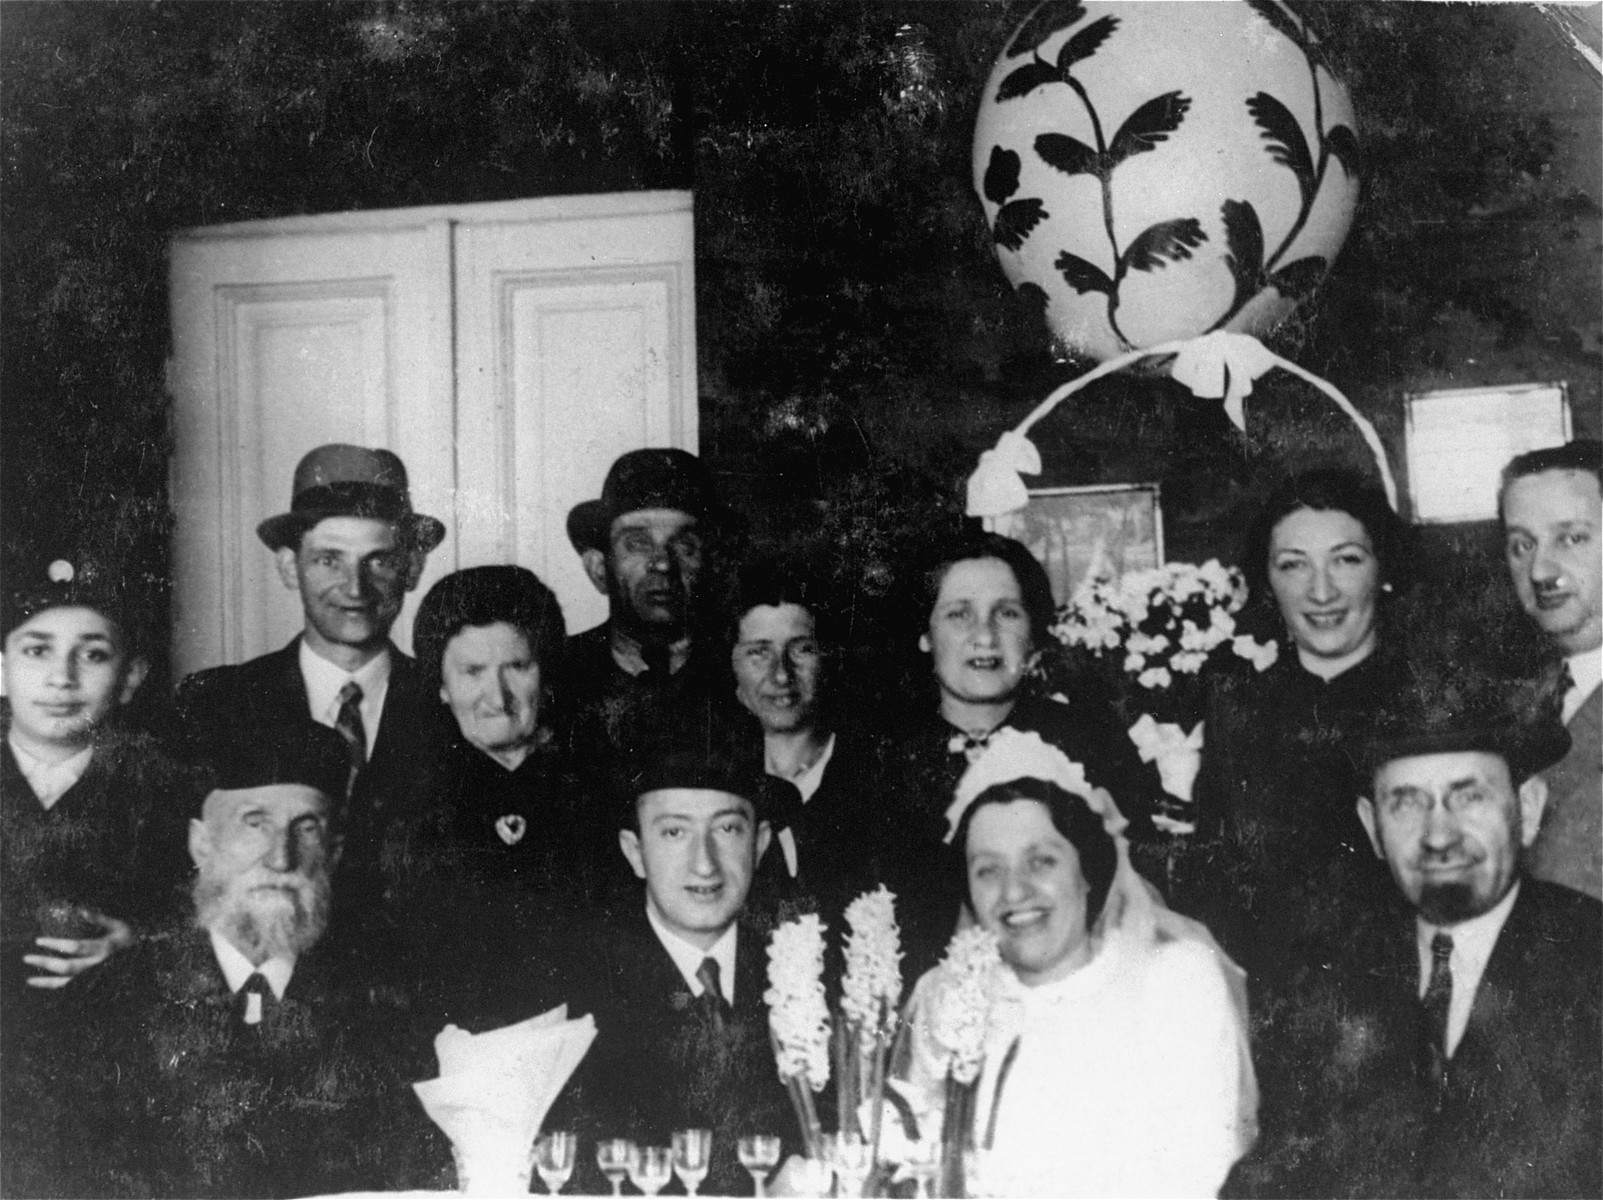 Group portrait of family and friends at the celebration following the wedding of Golda Weinstock and Shimon Zysblatt.    Among those pictured are the groom, Shimon Zysblatt, the bride, Golda Weinstock and the bride's father, Abraham Weinstock (bottom right). The bride is the donor's sister.